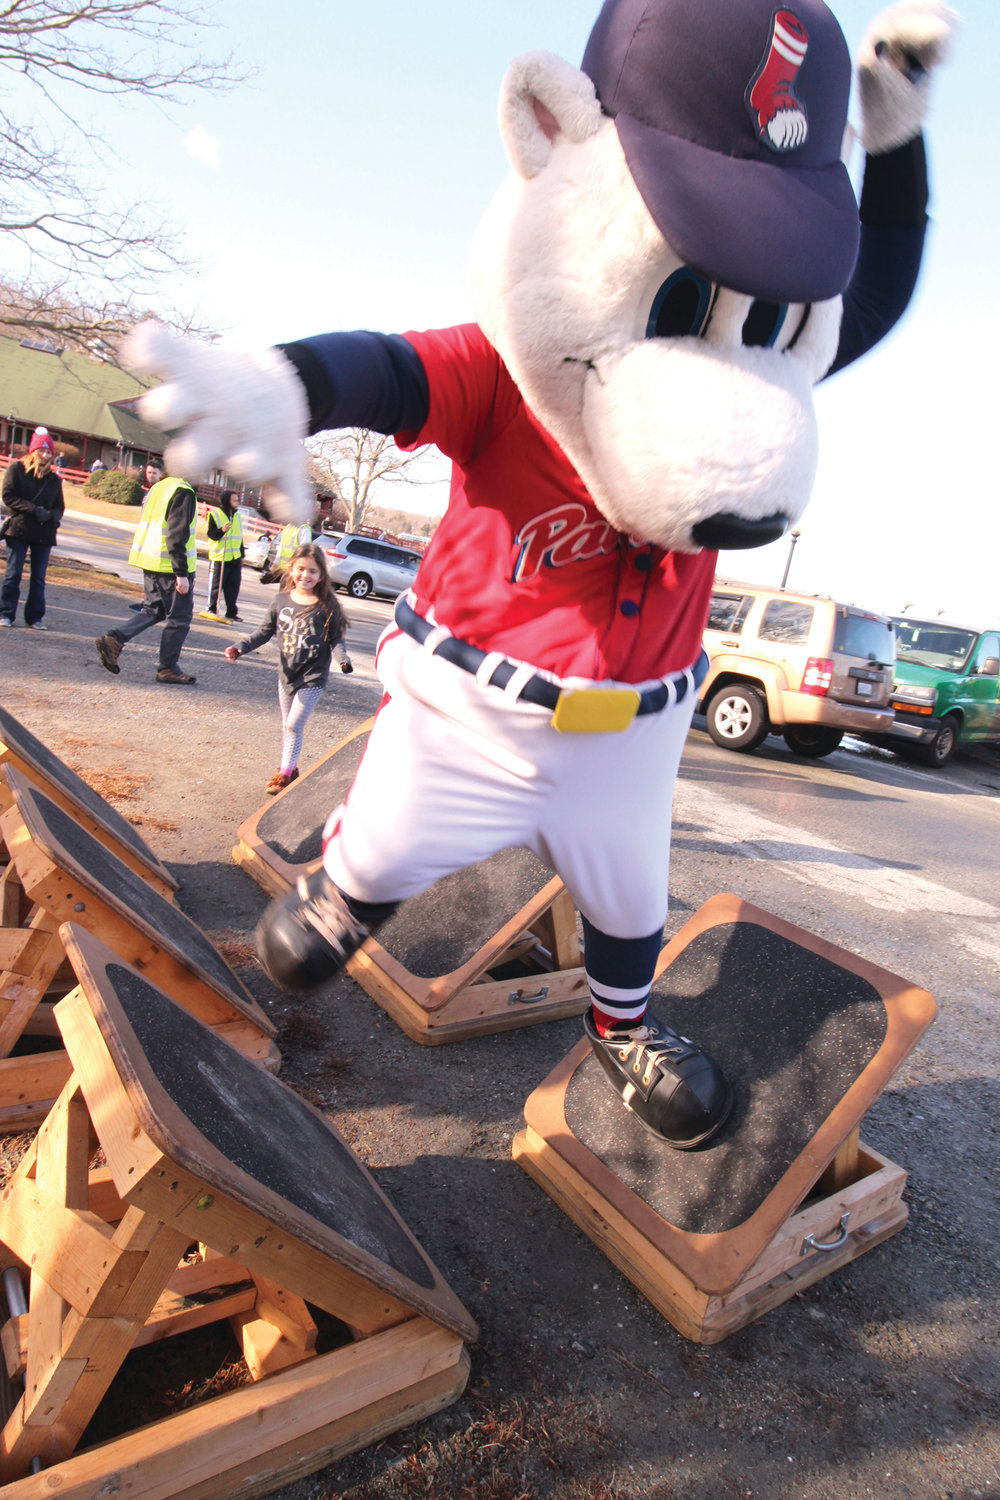 KEEPING HIS BALANCE: The PawSox mascot takes to the kiddie obsta course.